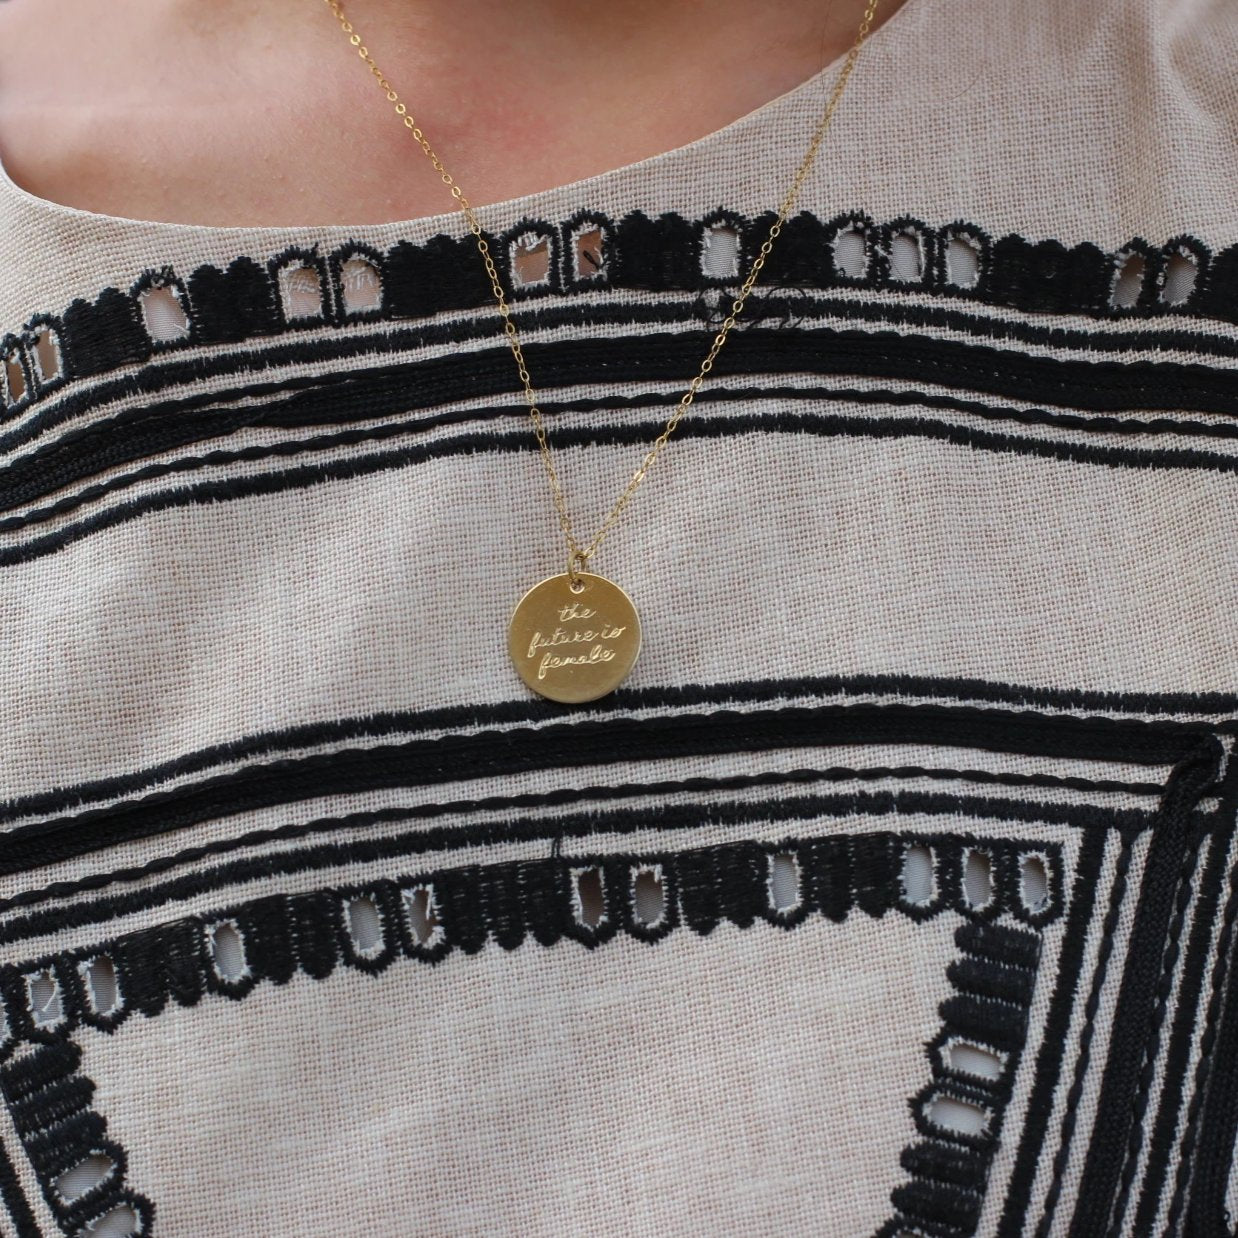 Bird + Stone 'The Future is Female' Necklace in Gold on Dress